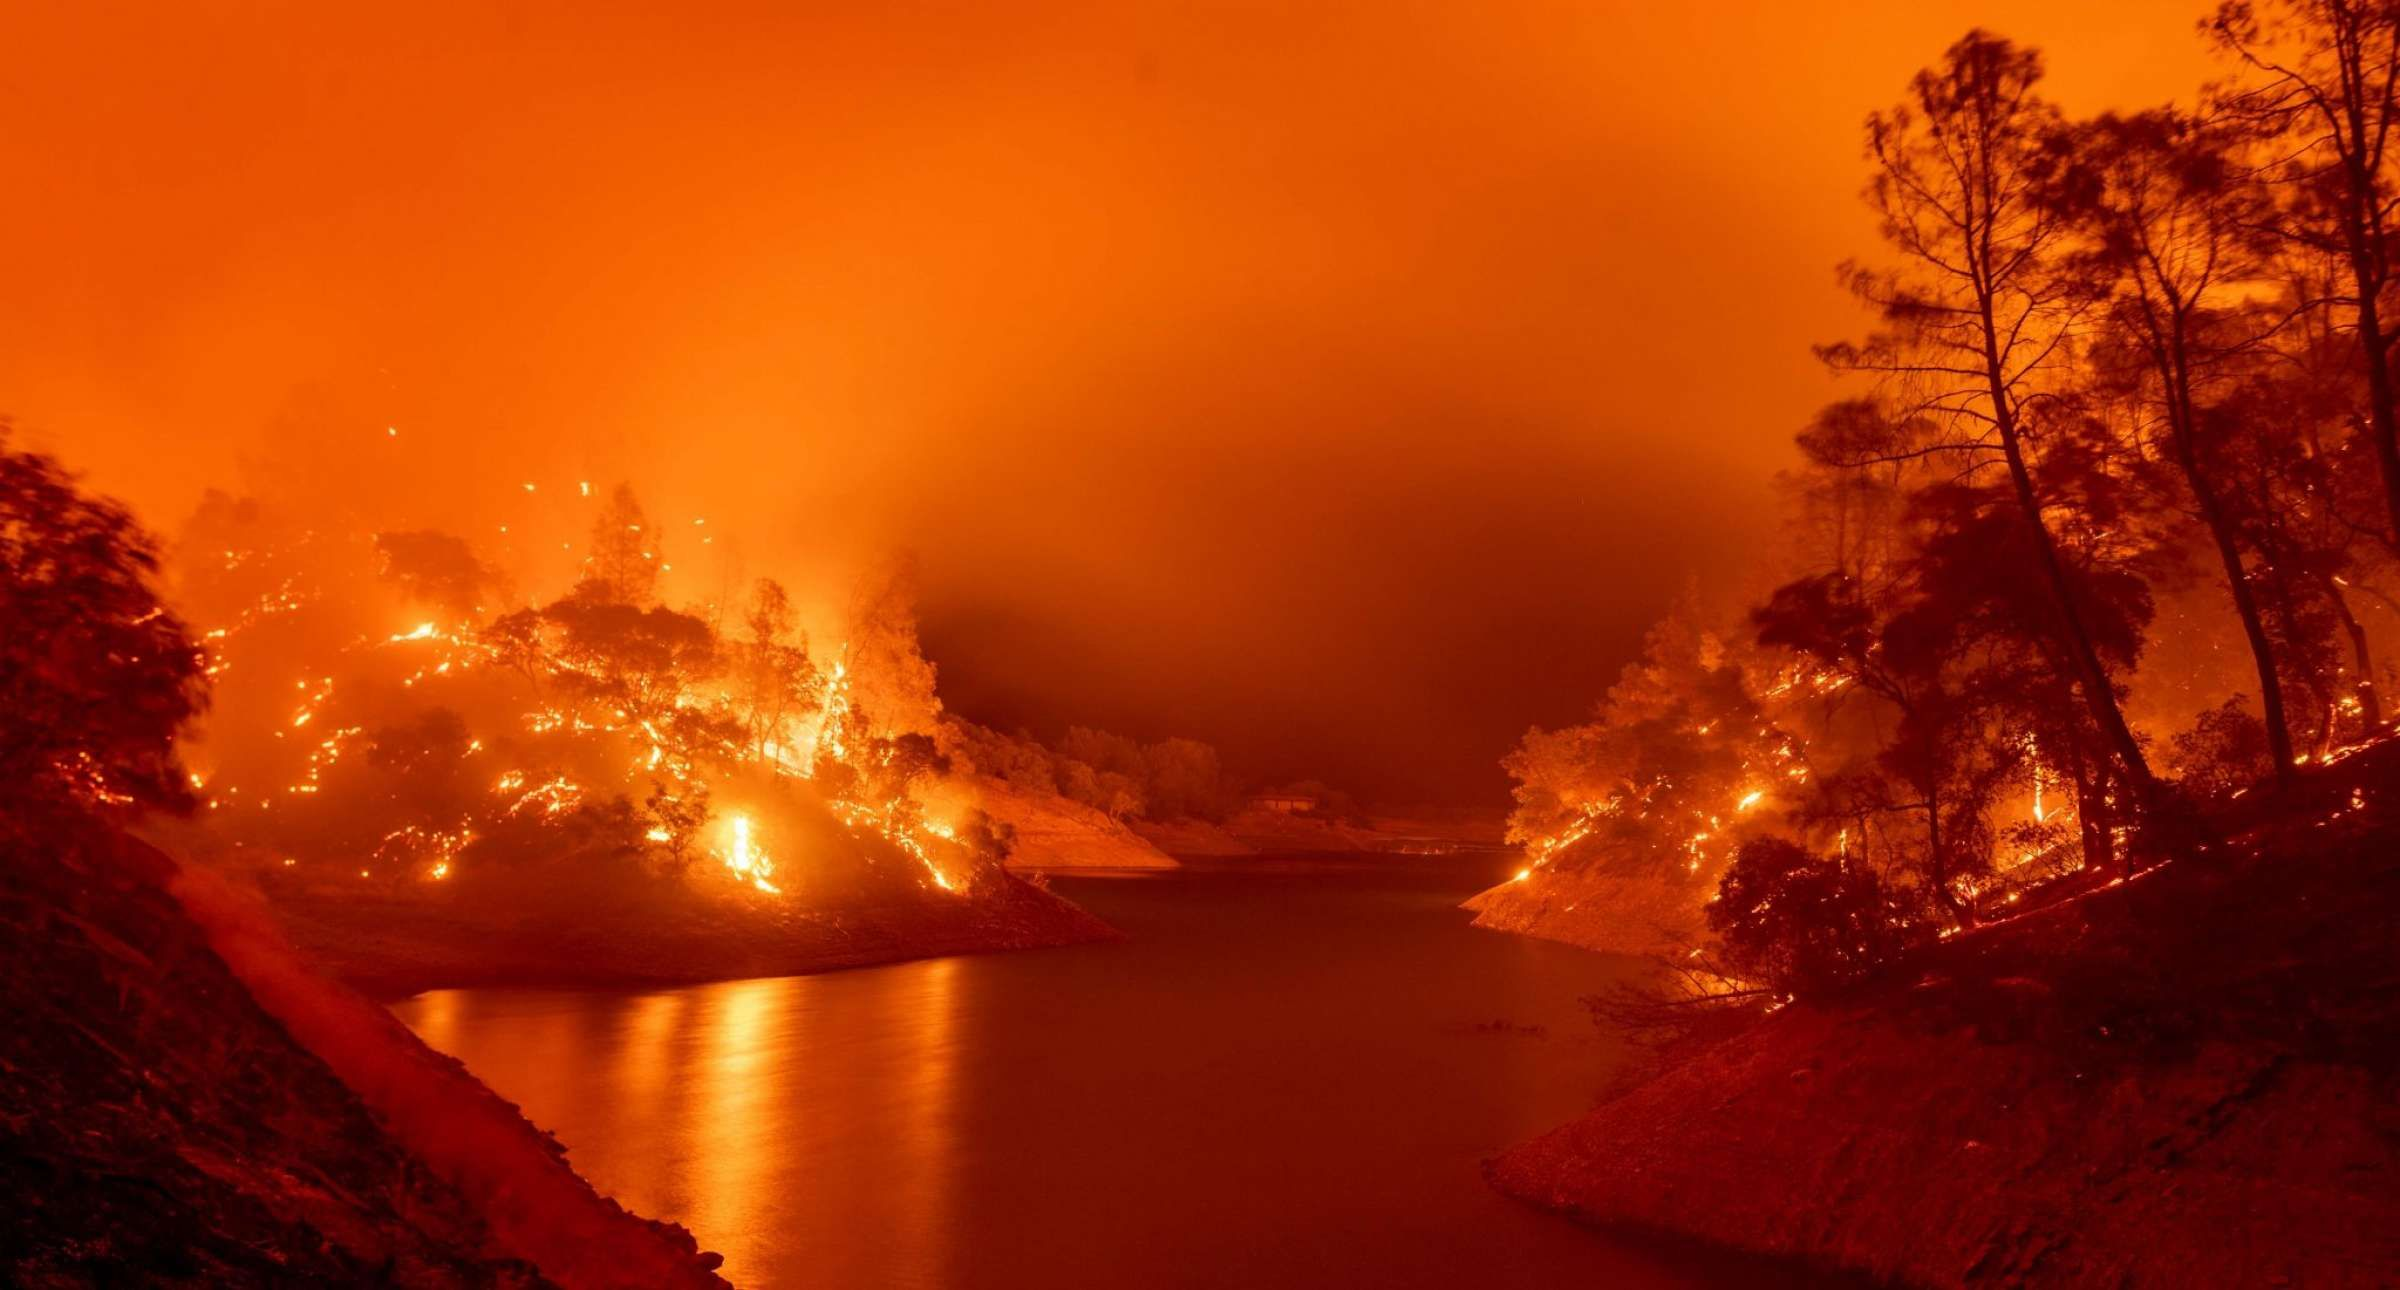 These Are The Fires Burning In The Bay Area Right Now In 2020 California Wildfires Fire California